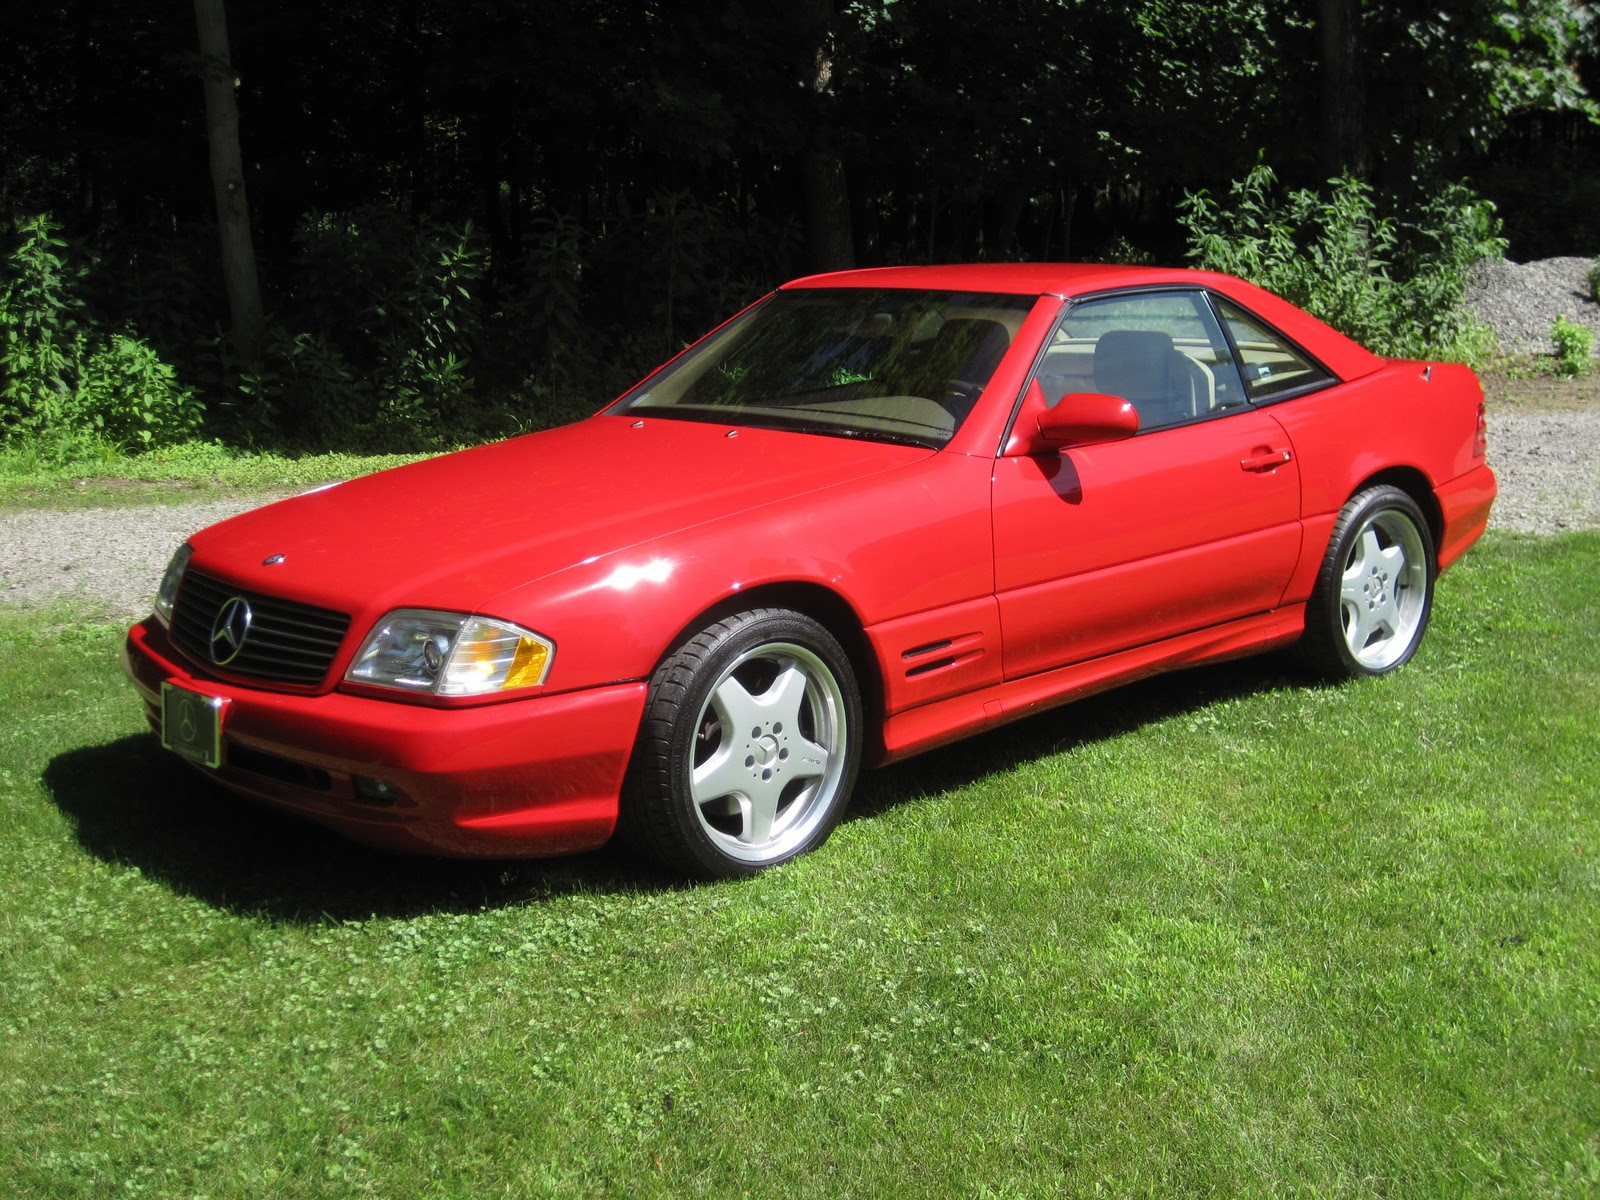 Used Mercedes-Benz SL-Class For Sale Pittsburgh, PA - CarGurus